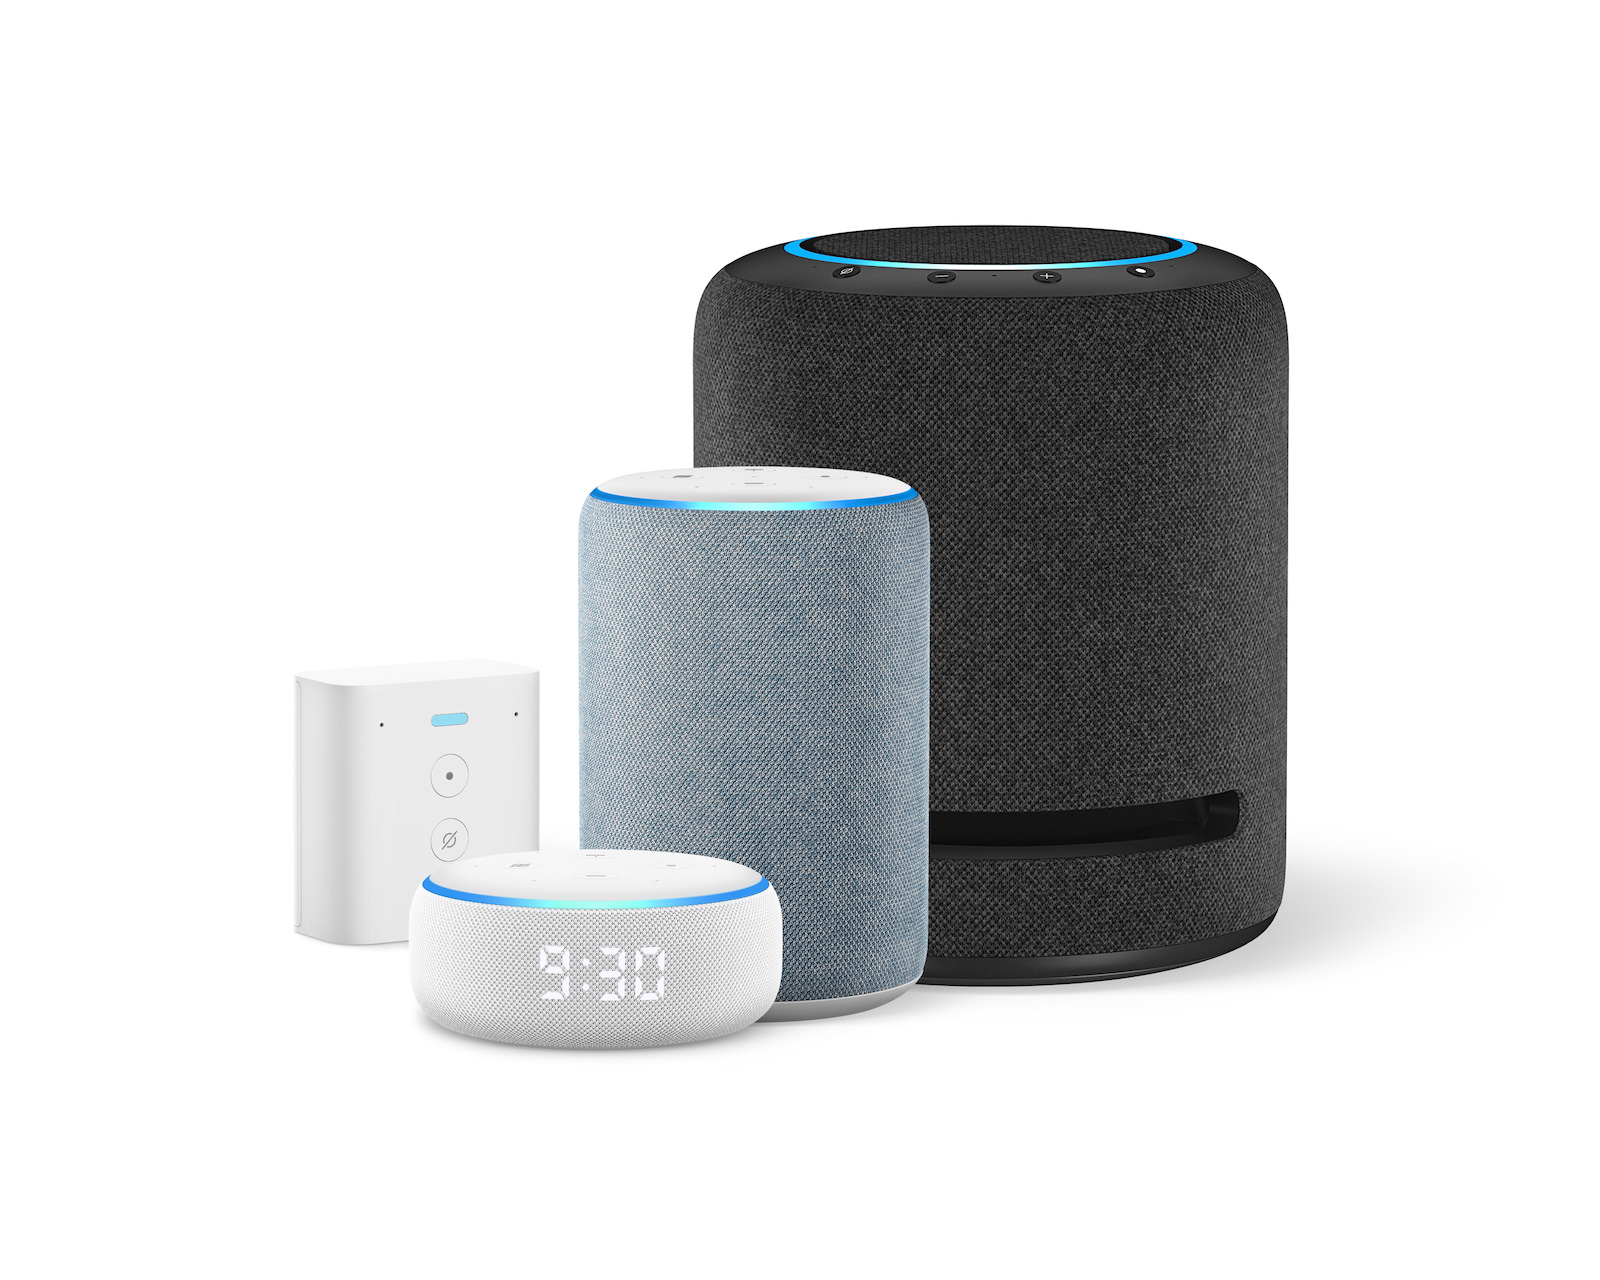 Amazon Echo Series 2019